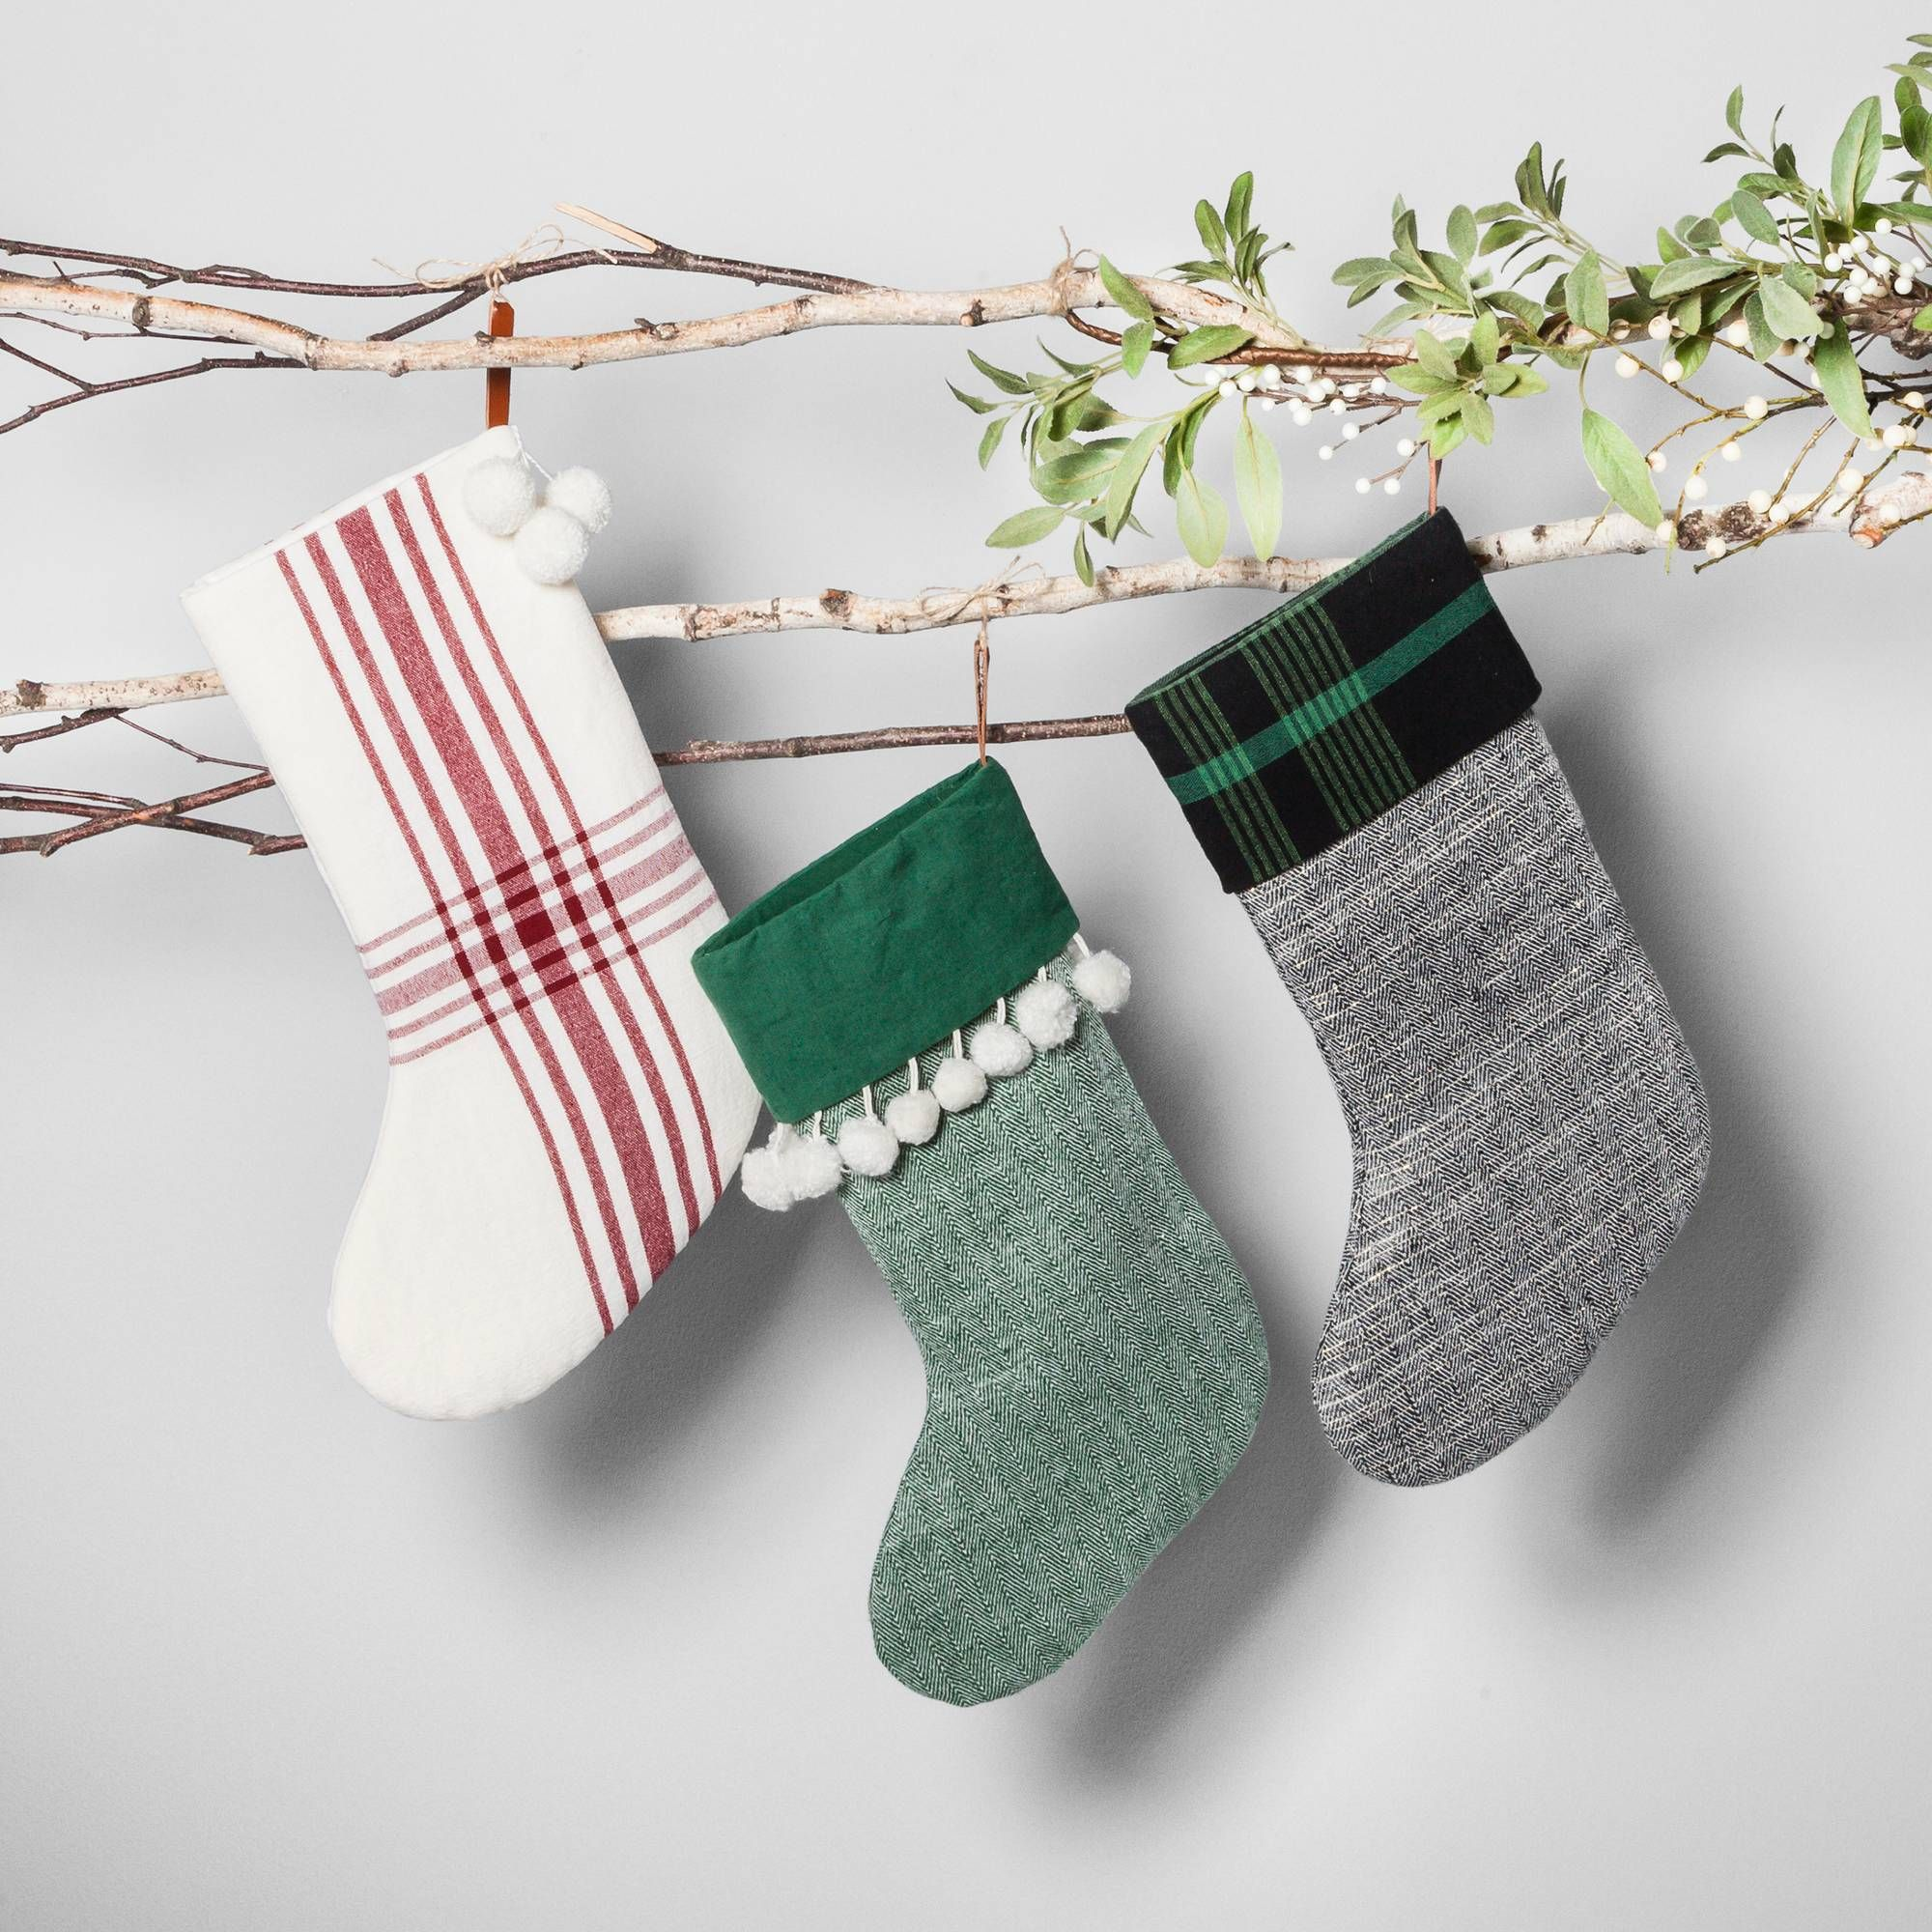 27 unique christmas stockings best cute diy ideas for holiday